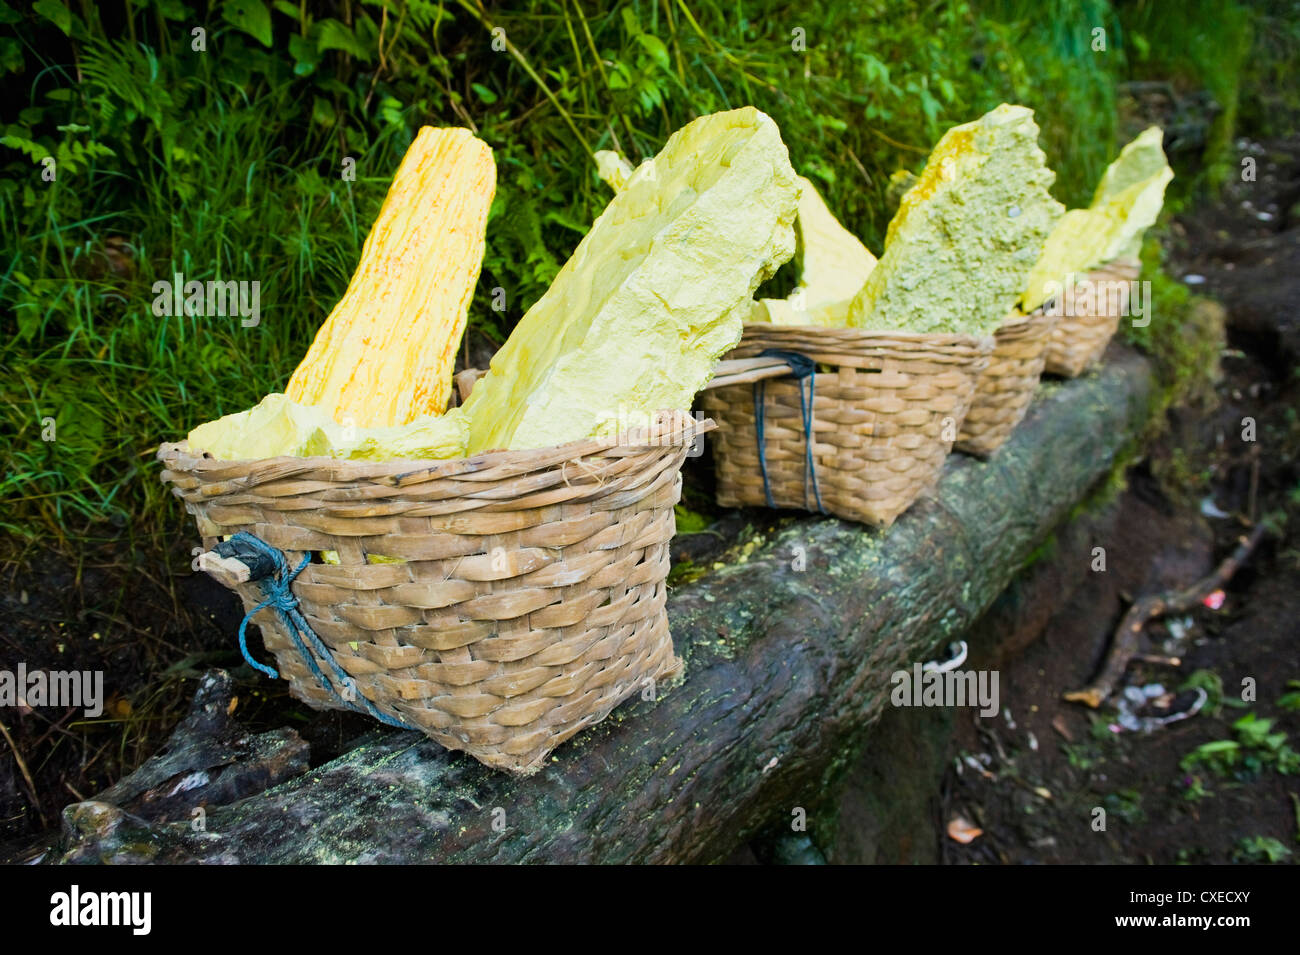 Baskets of bright yellow sulphur, Kawah Ijen, Java, Indonesia, Southeast Asia, Asia - Stock Image